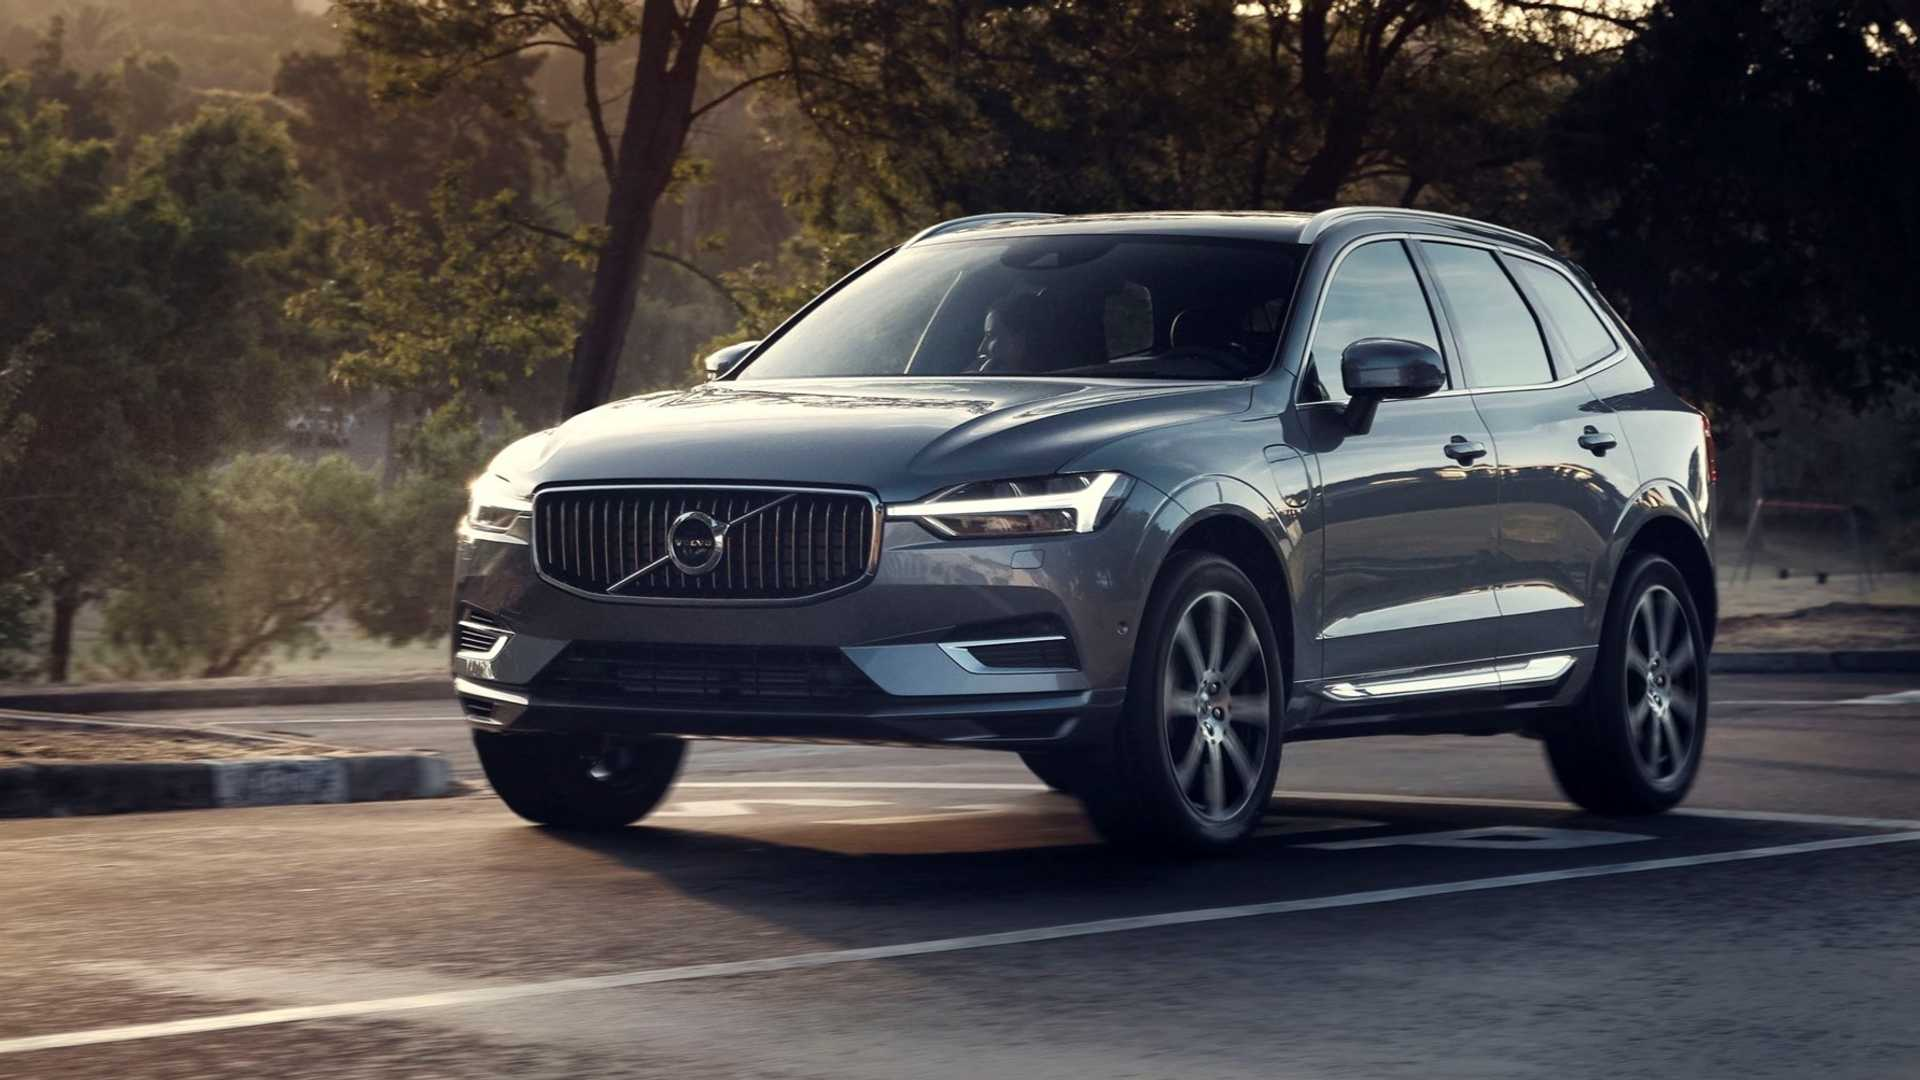 2020 Volvo XC60 Price, Design and Review